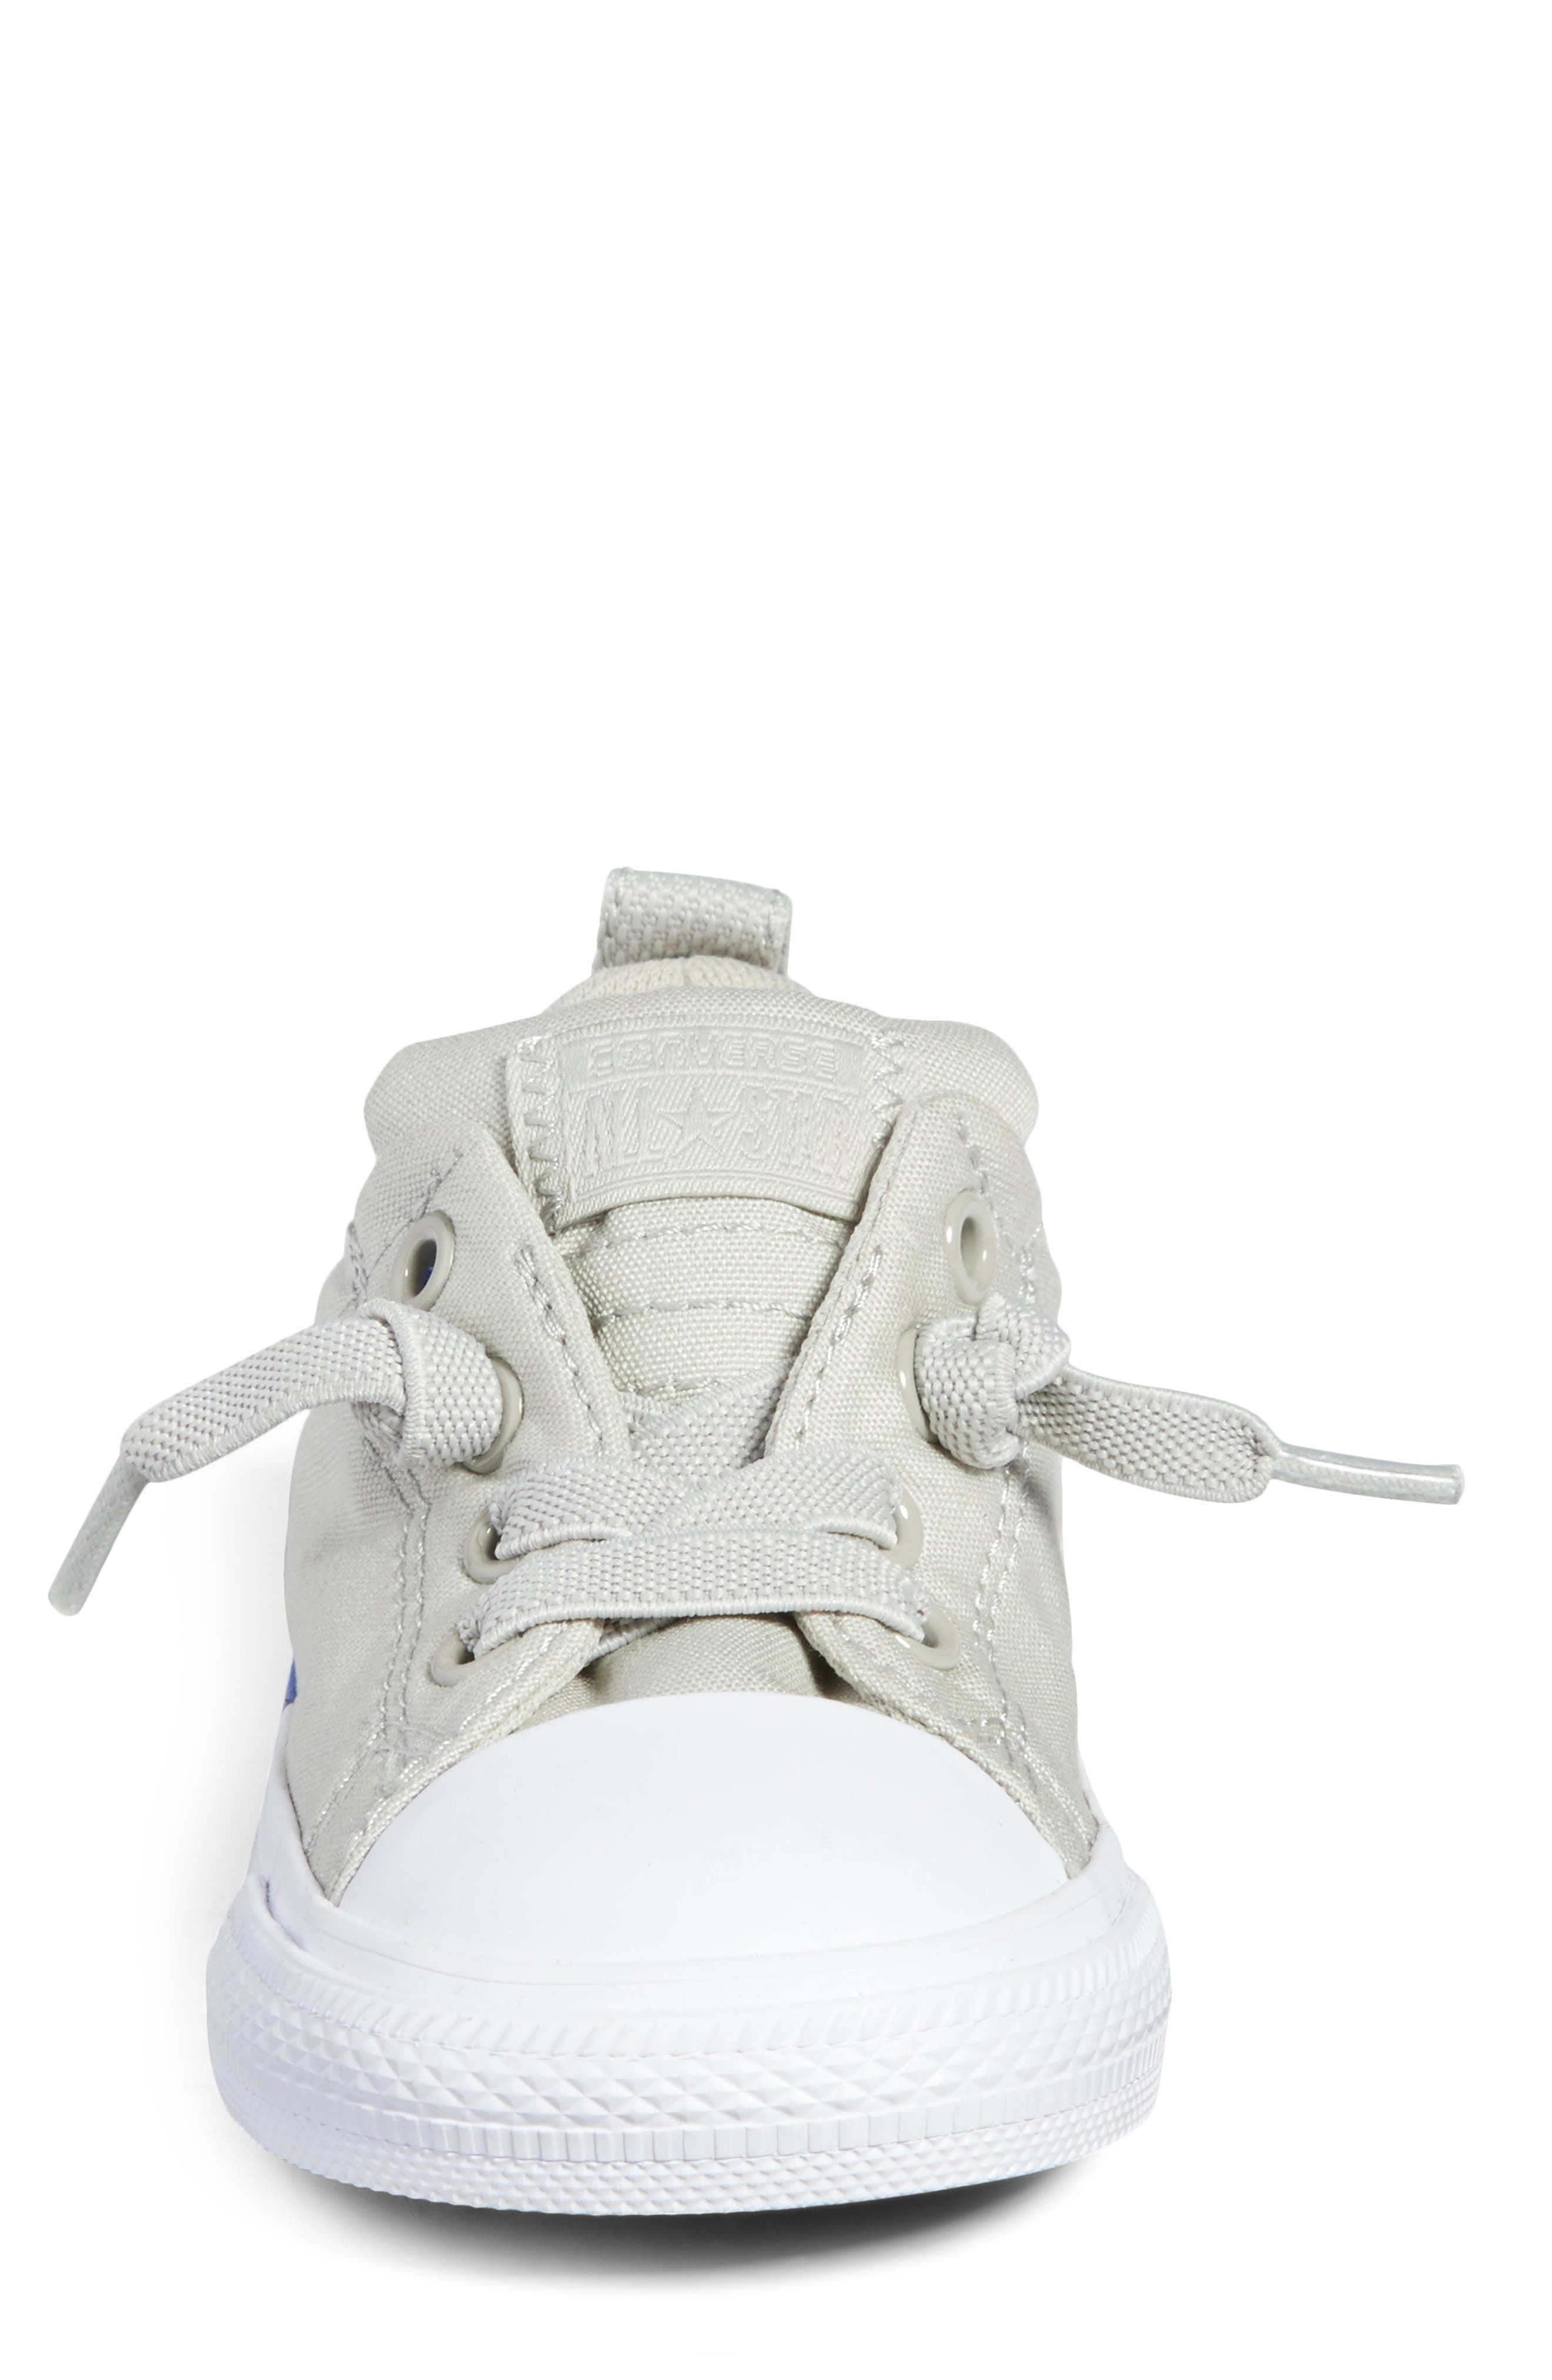 Chuck Taylor<sup>®</sup> All Star<sup>®</sup> Colorblock Street Sneaker,                             Alternate thumbnail 4, color,                             Pale Grey